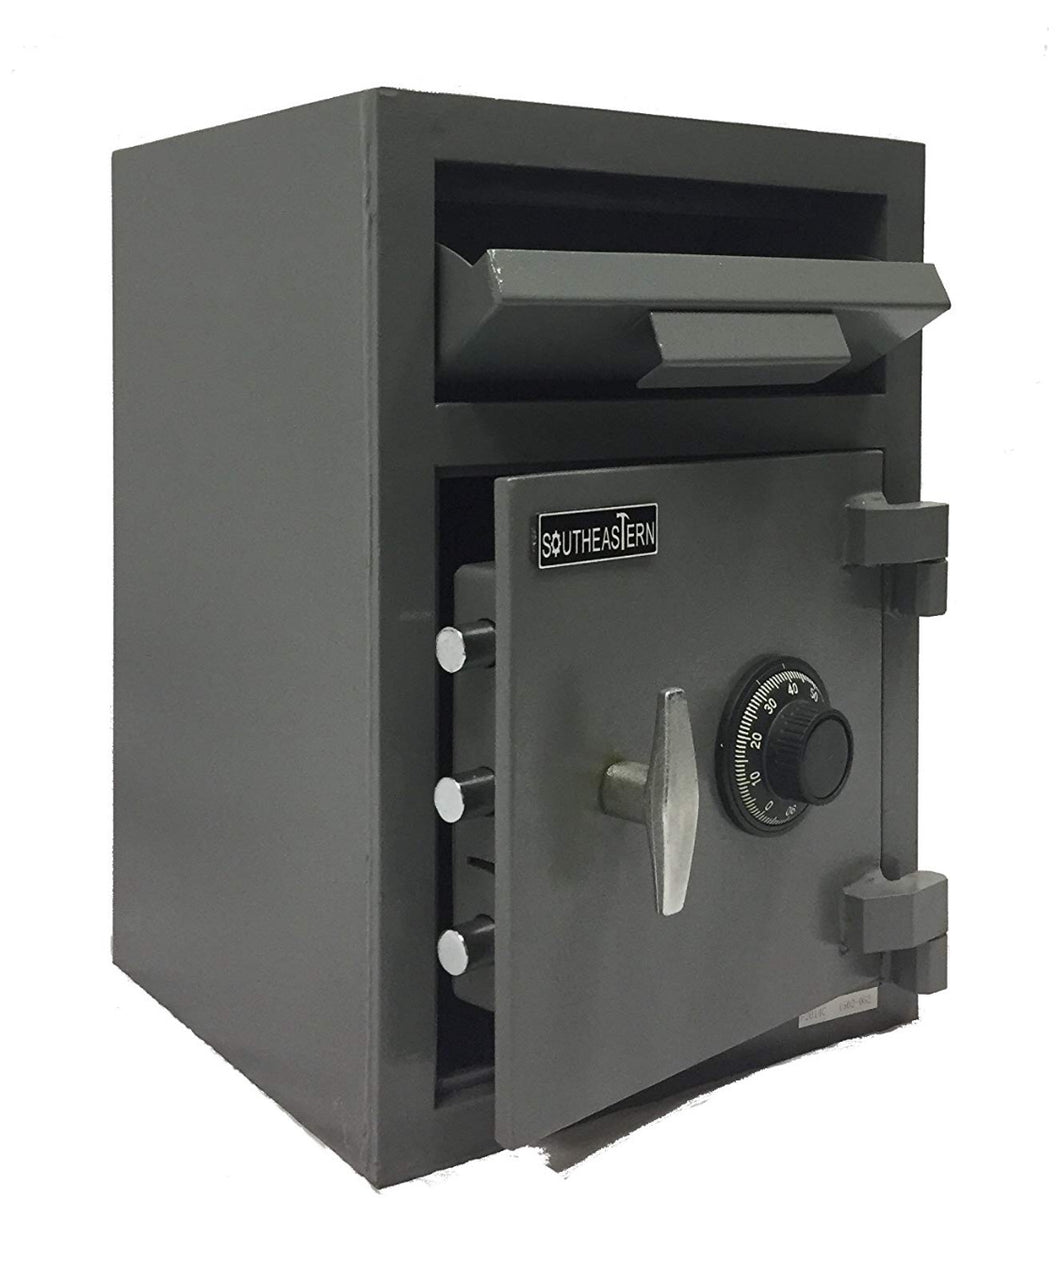 Southeastern F2014C Cash Drop Depository Safe with UListed Mechanical Combination Lock